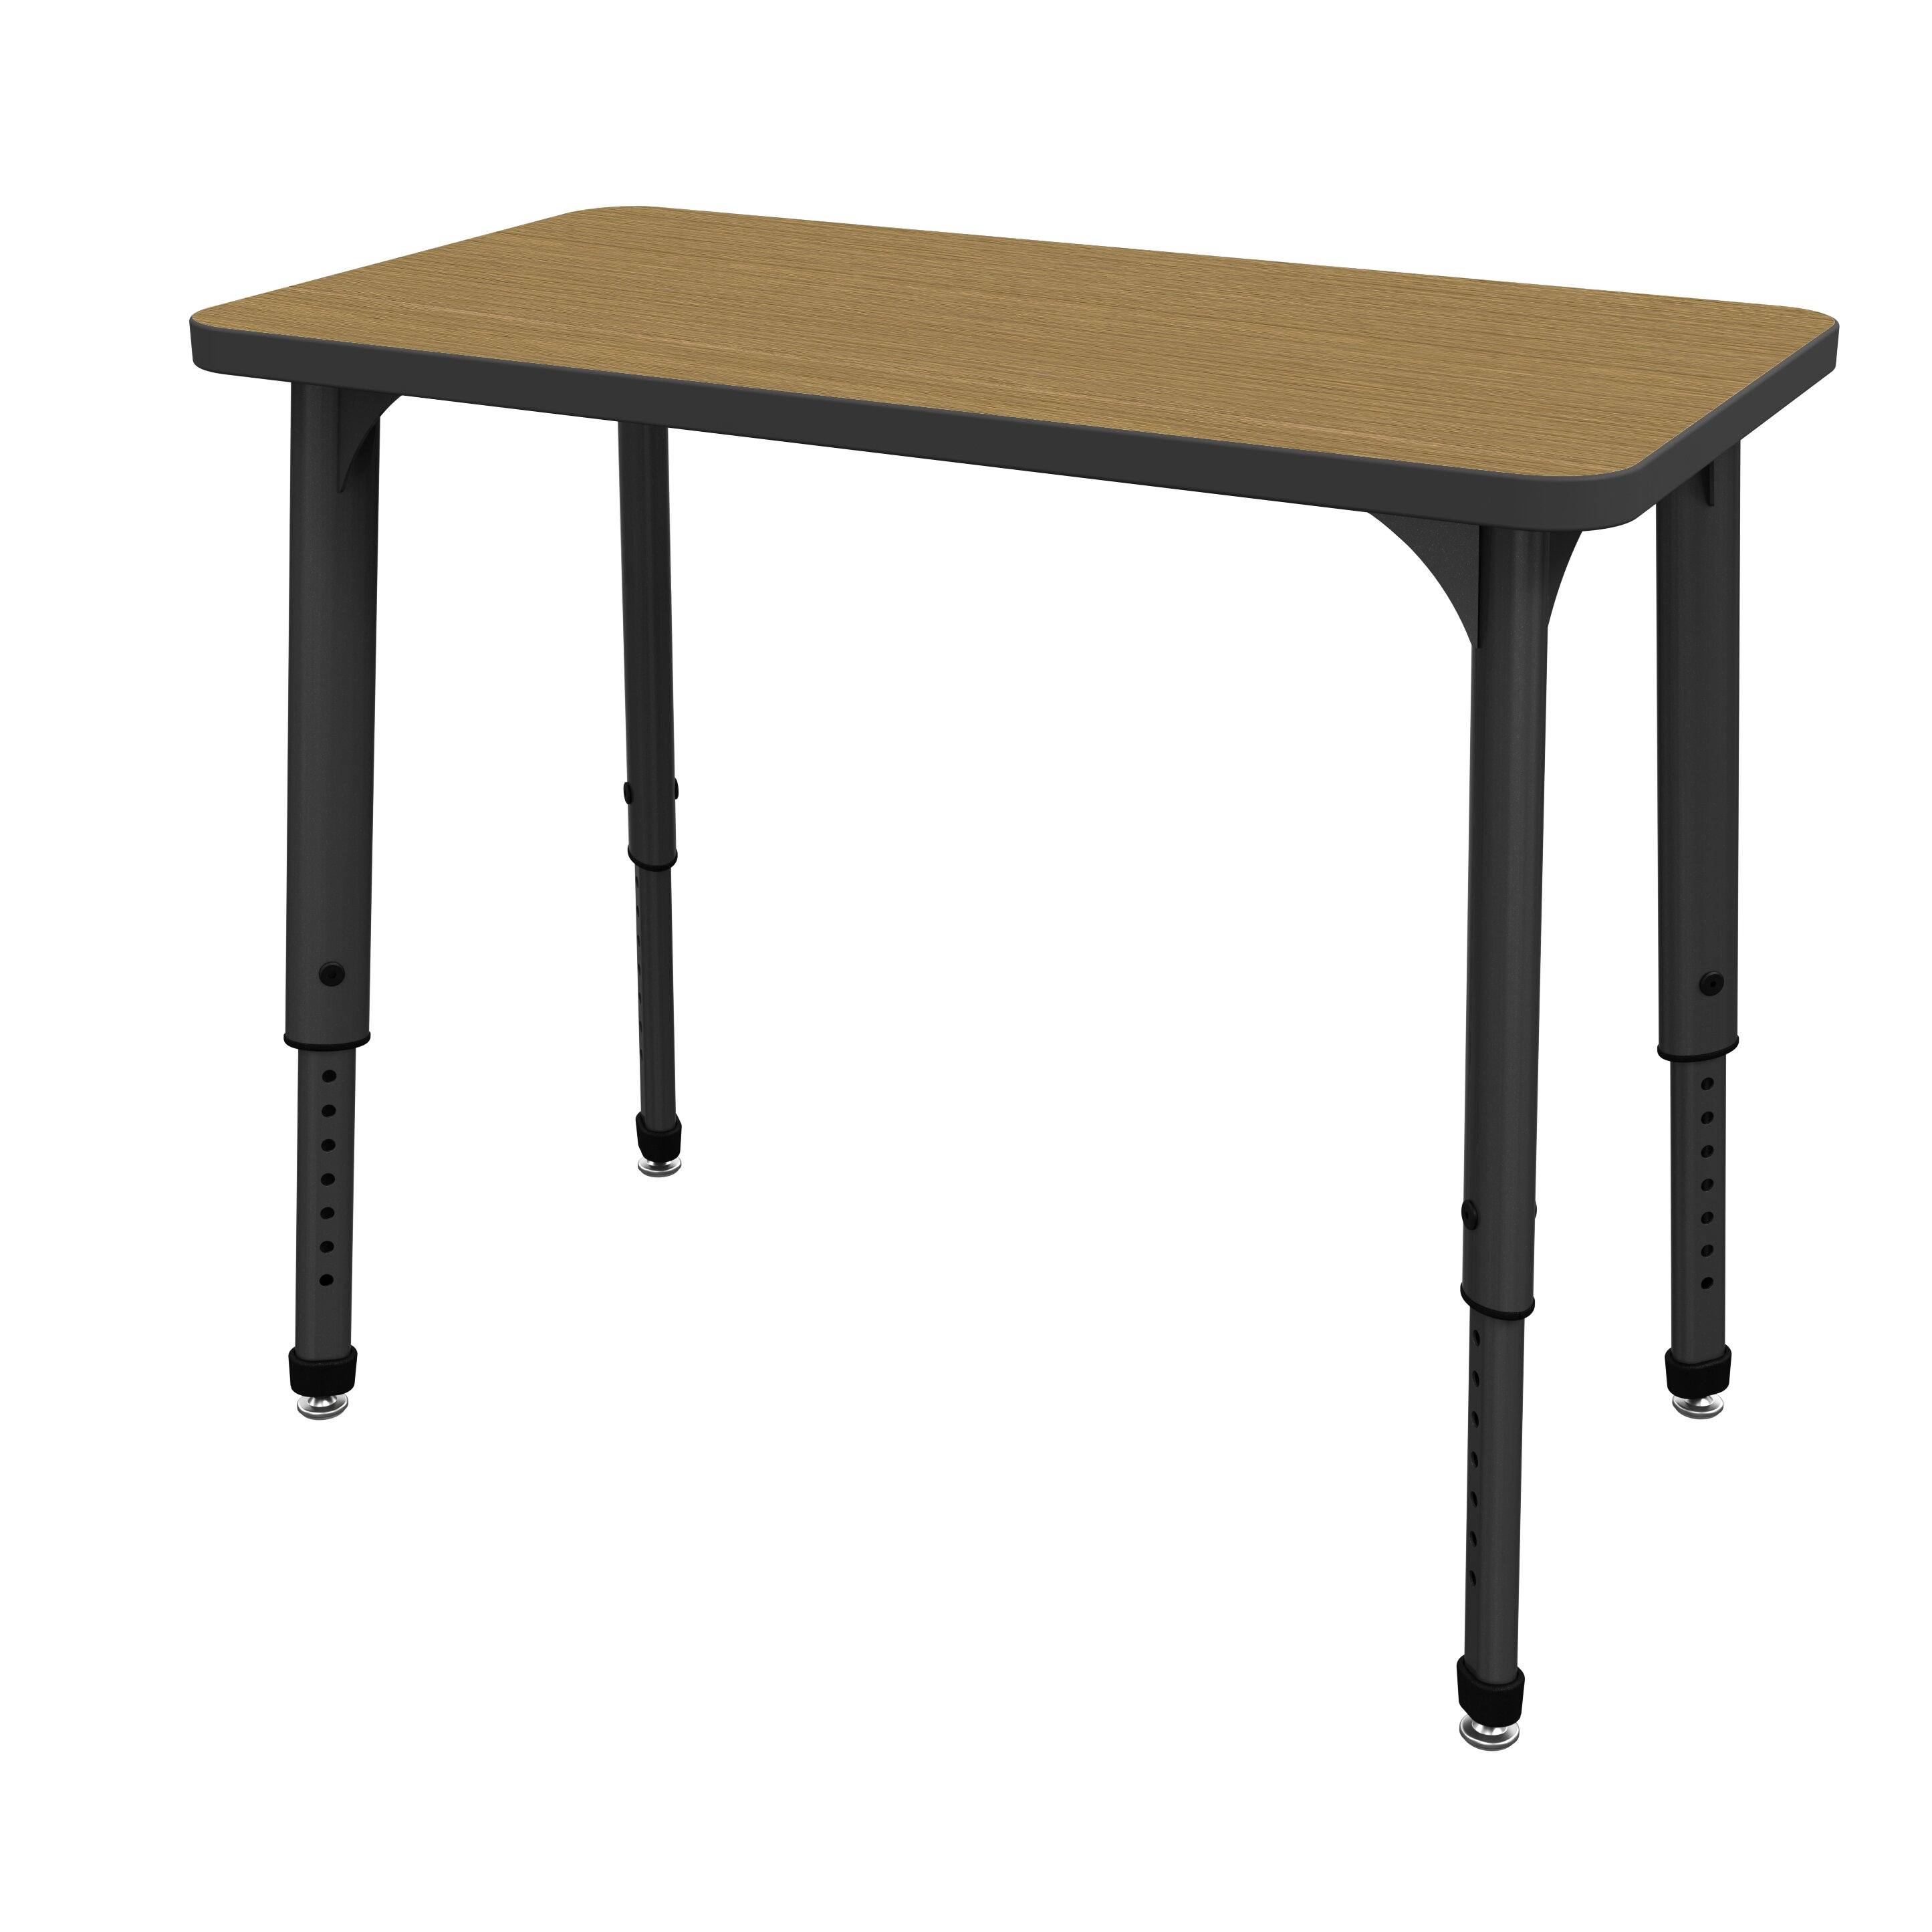 Small Rectangular Pedestal Dining Table Images High